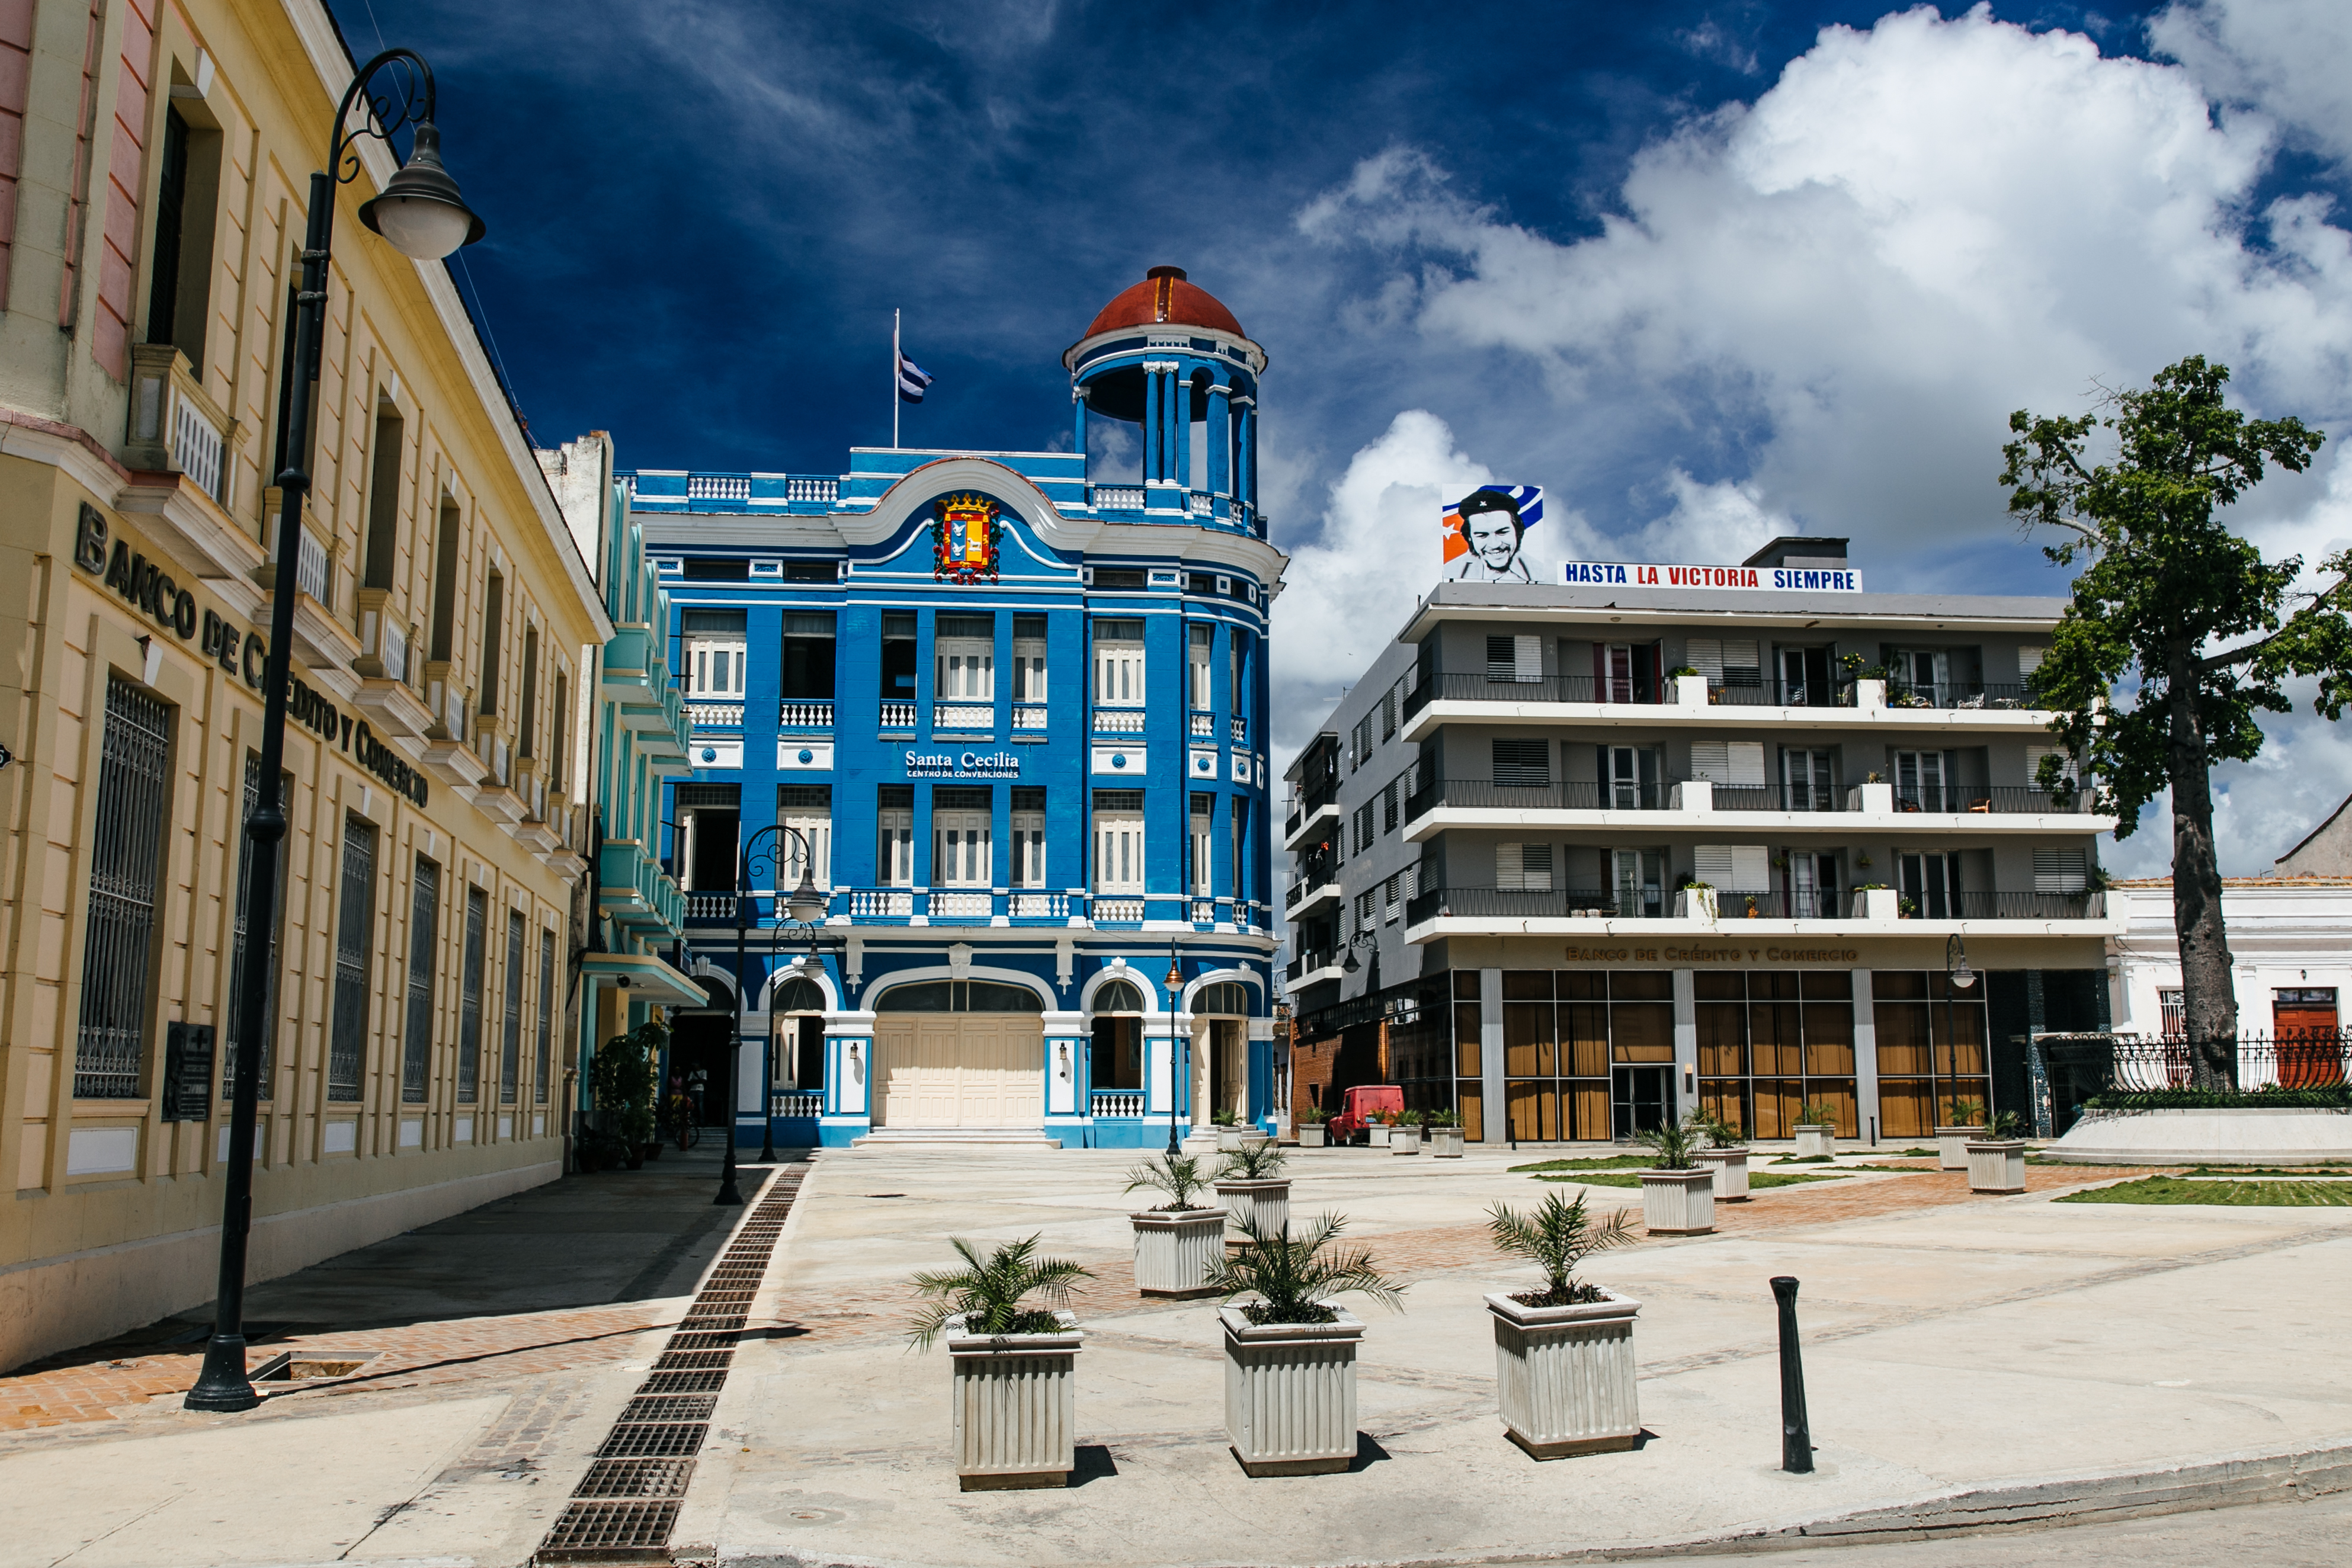 UNESCO World Heritage Centre Plaza in Camaguey, Cuba